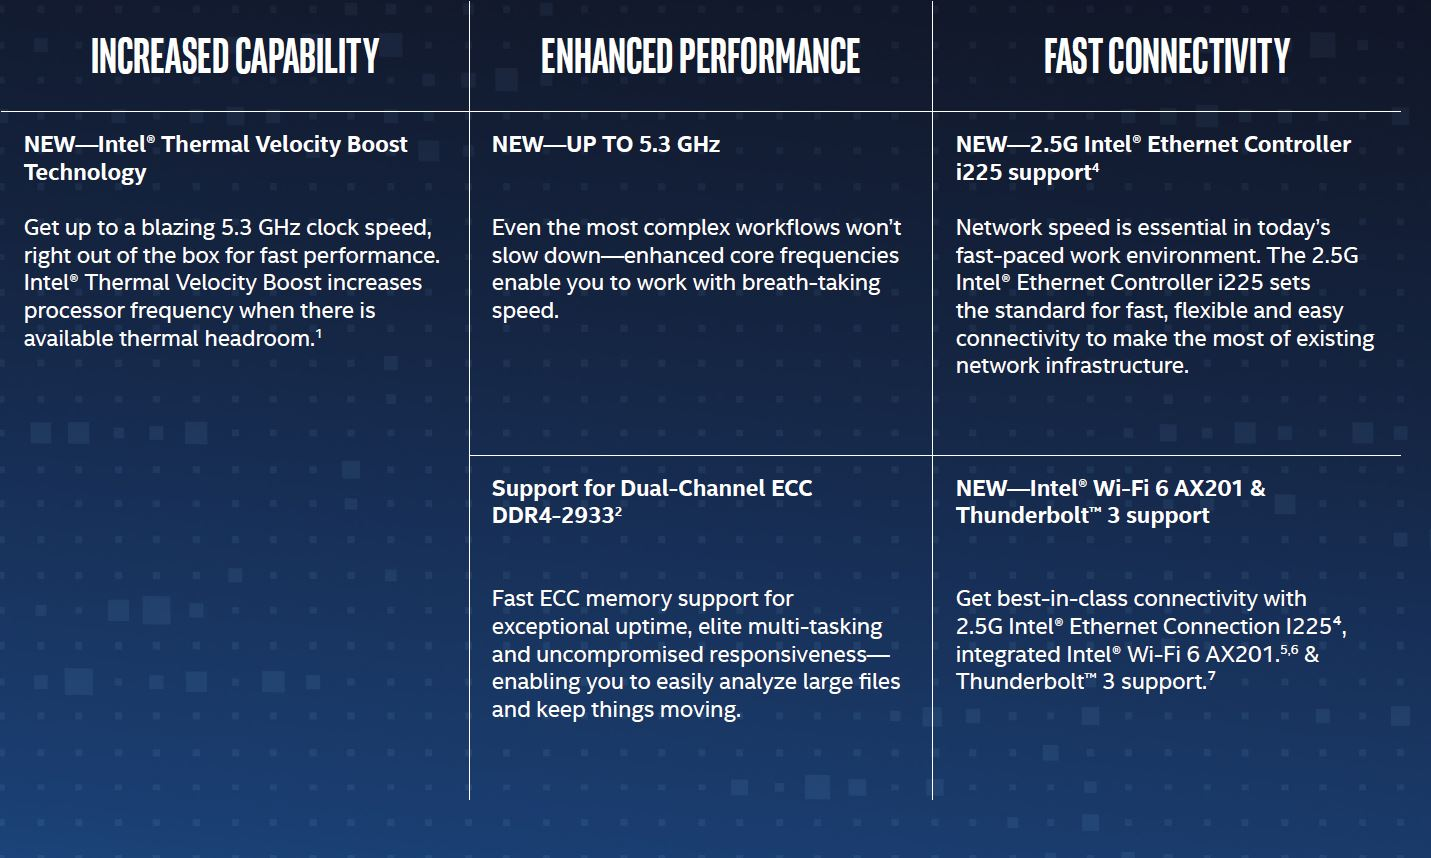 Intel Xeon W 1200 Series Features 1